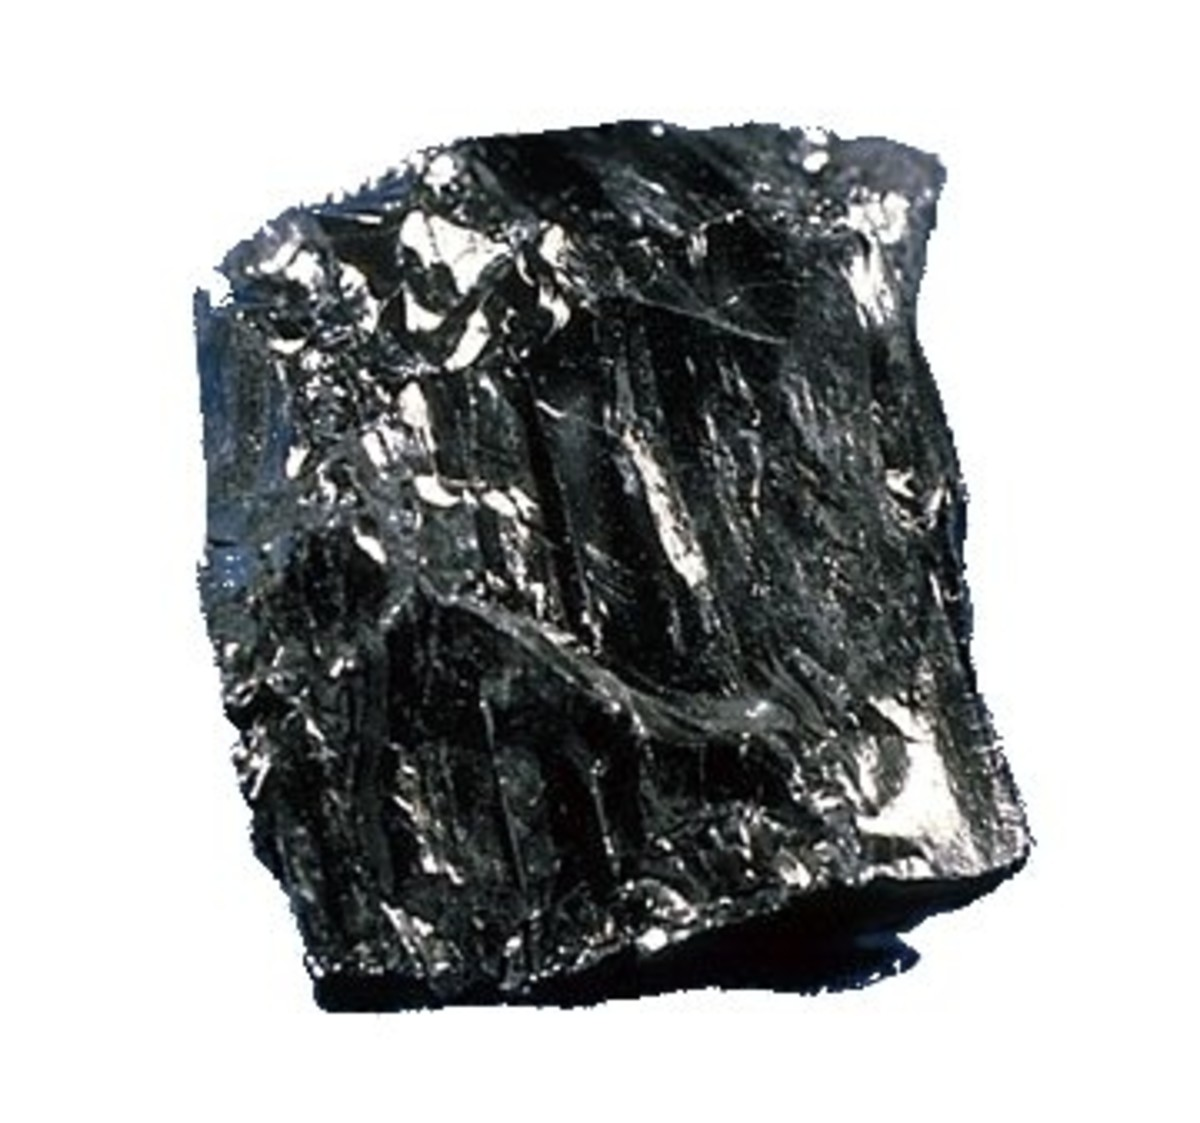 State mineral: Coal